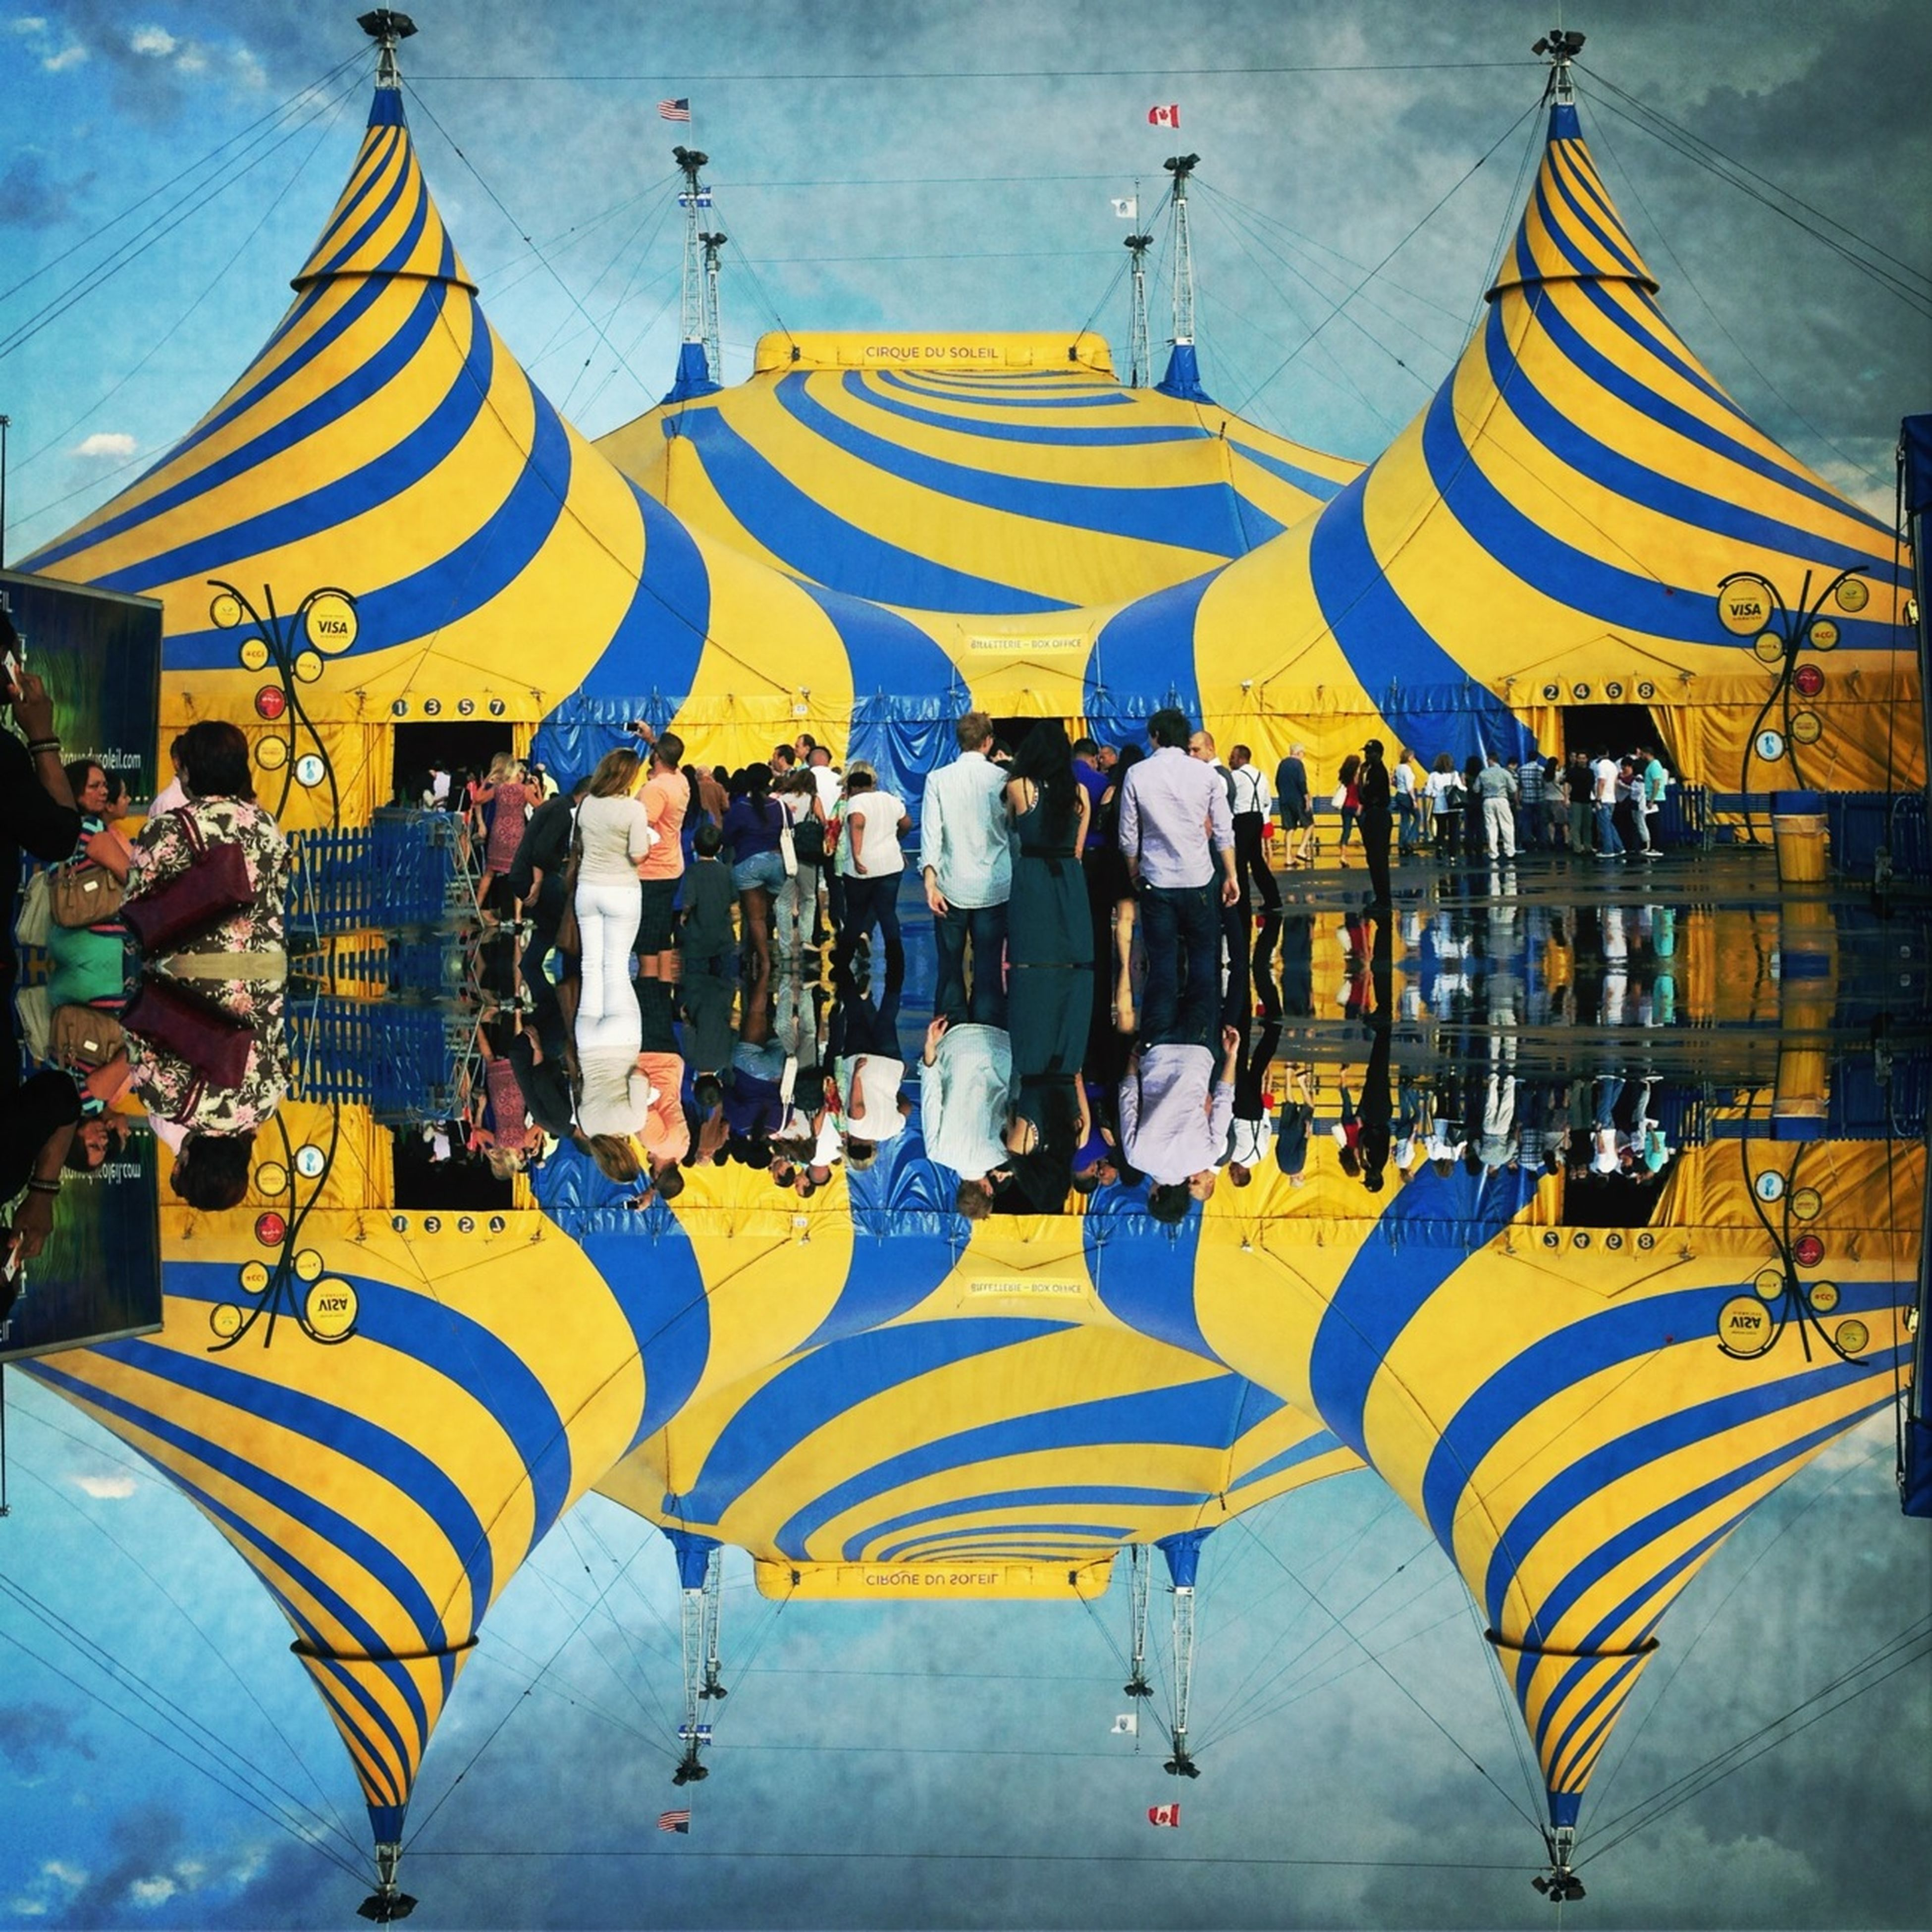 multi colored, religion, umbrella, place of worship, sky, spirituality, architecture, built structure, cultures, building exterior, art, art and craft, in a row, tradition, design, colorful, pattern, outdoors, creativity, tourism